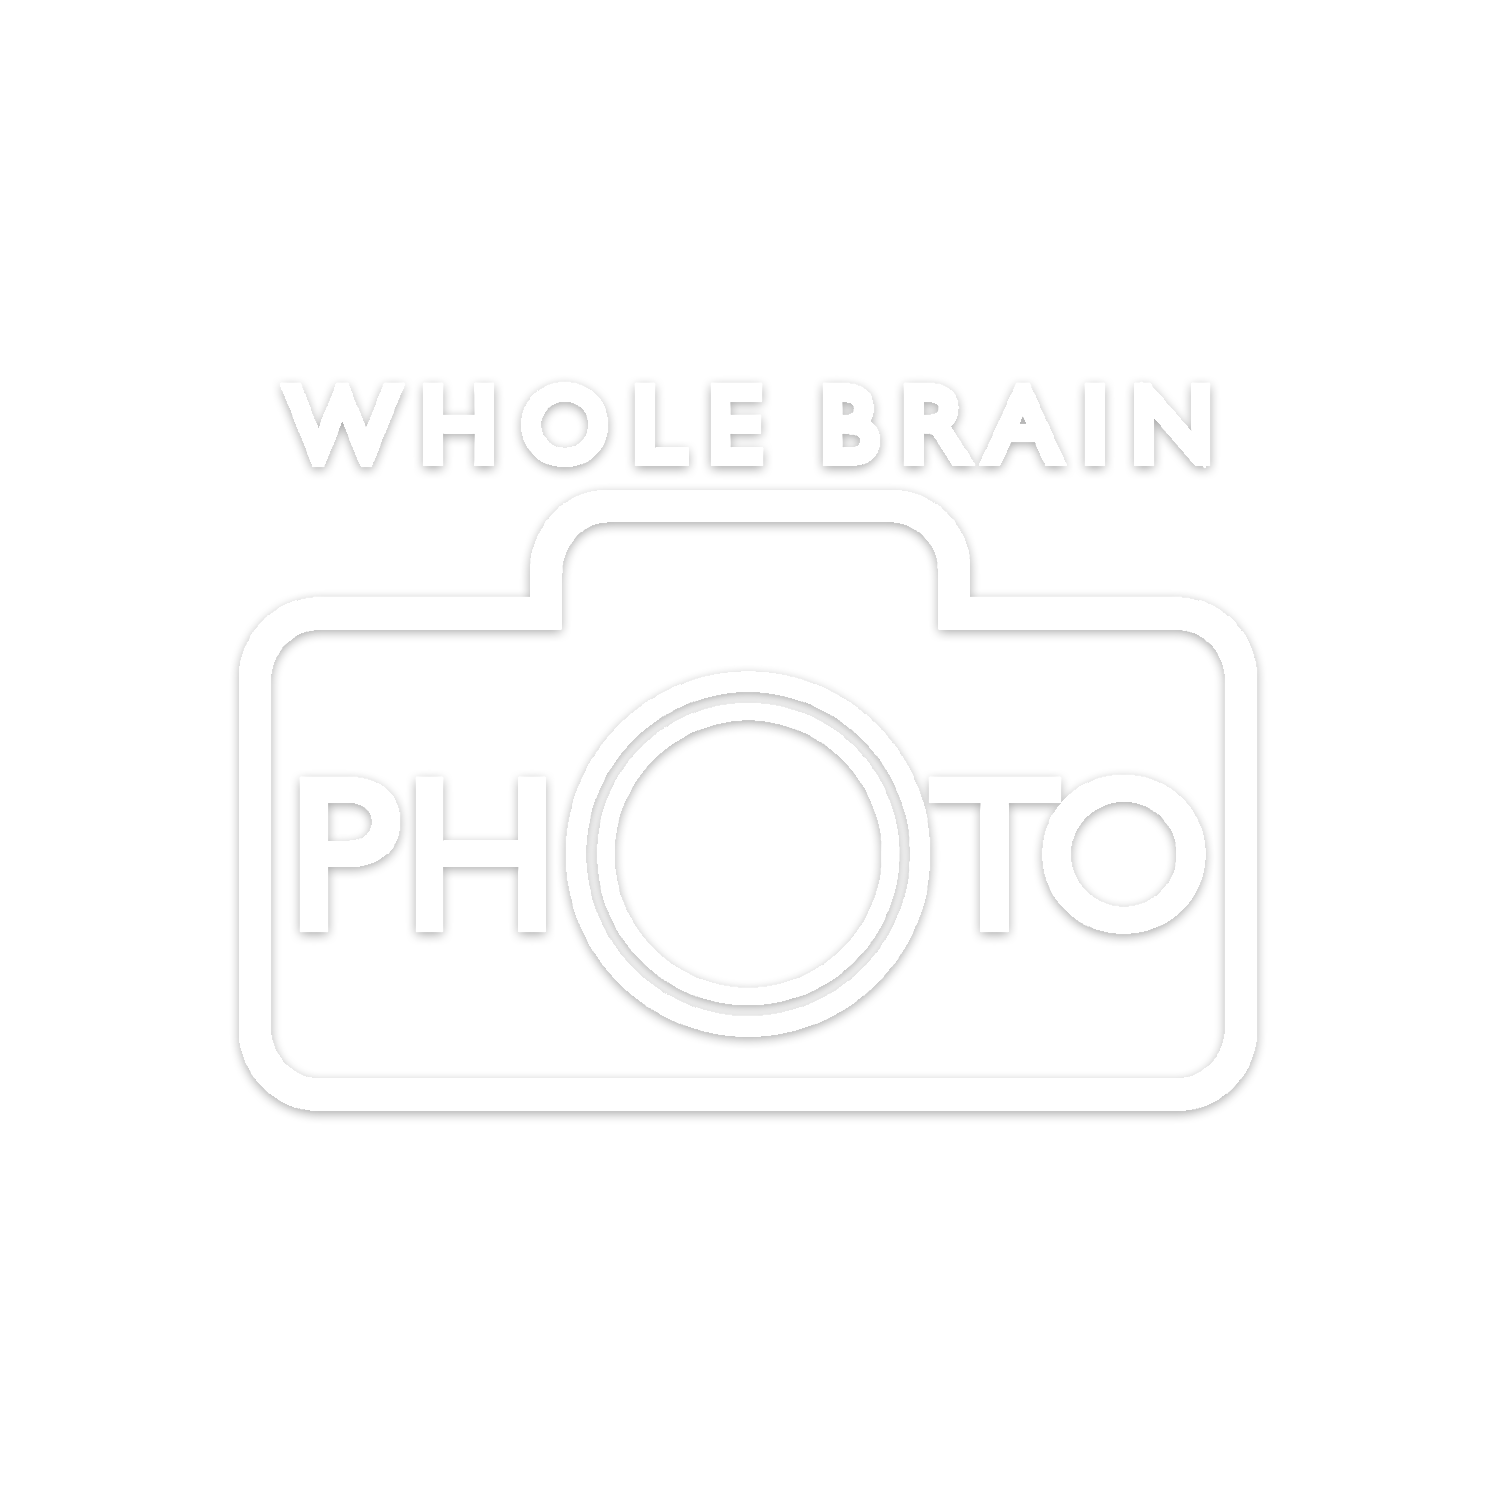 Whole Brain Photo